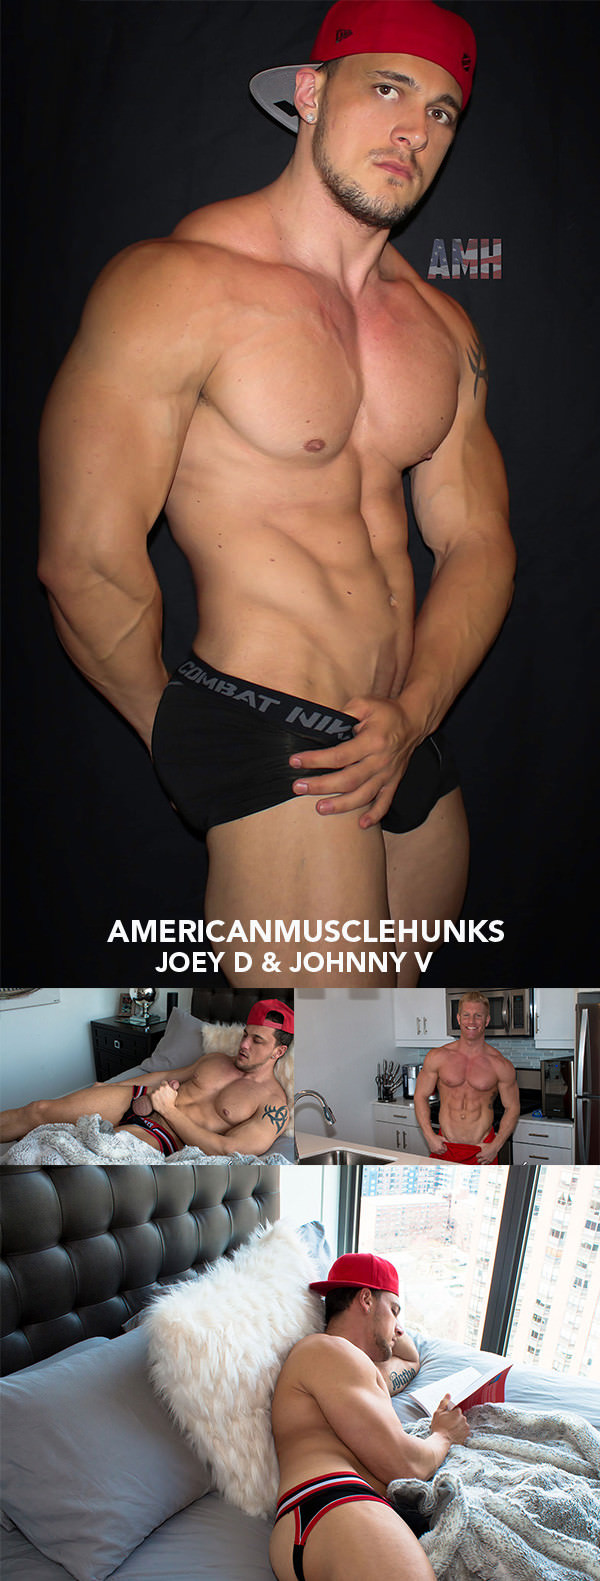 AmericanMuscleHunks Joey D Johnny V Part 1